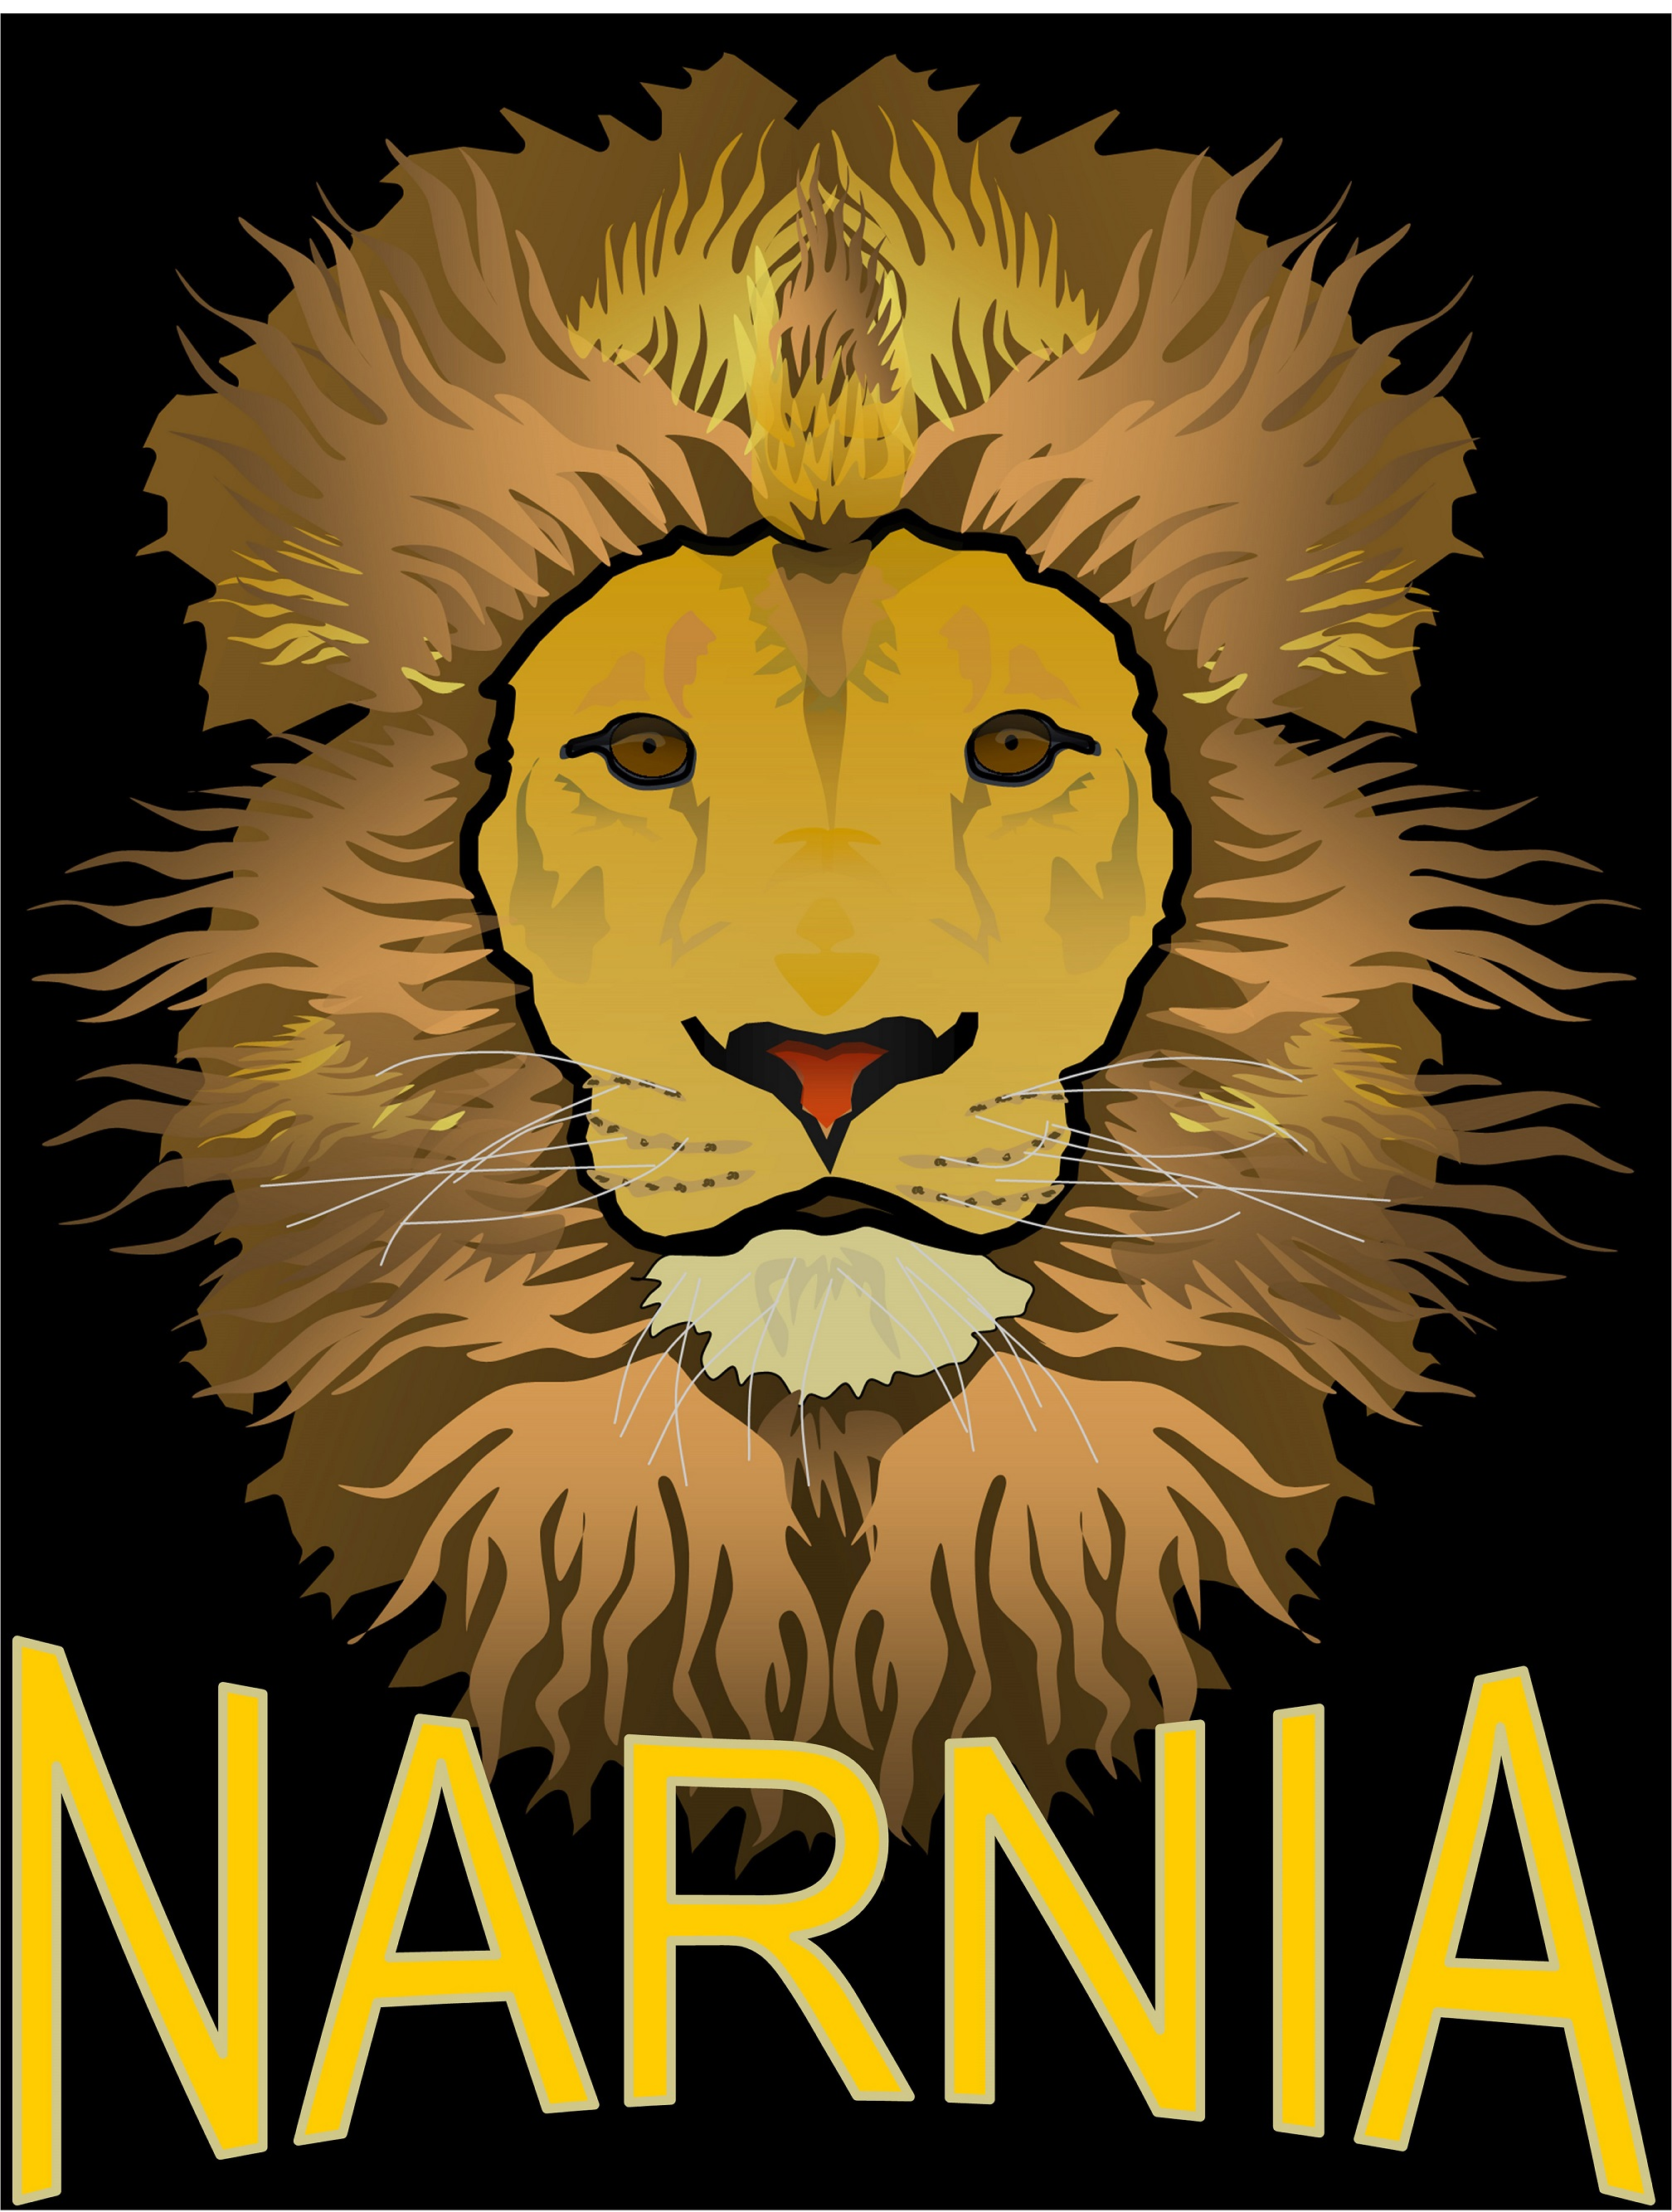 narnia, the lion, the witch & the wardrobe | prince william